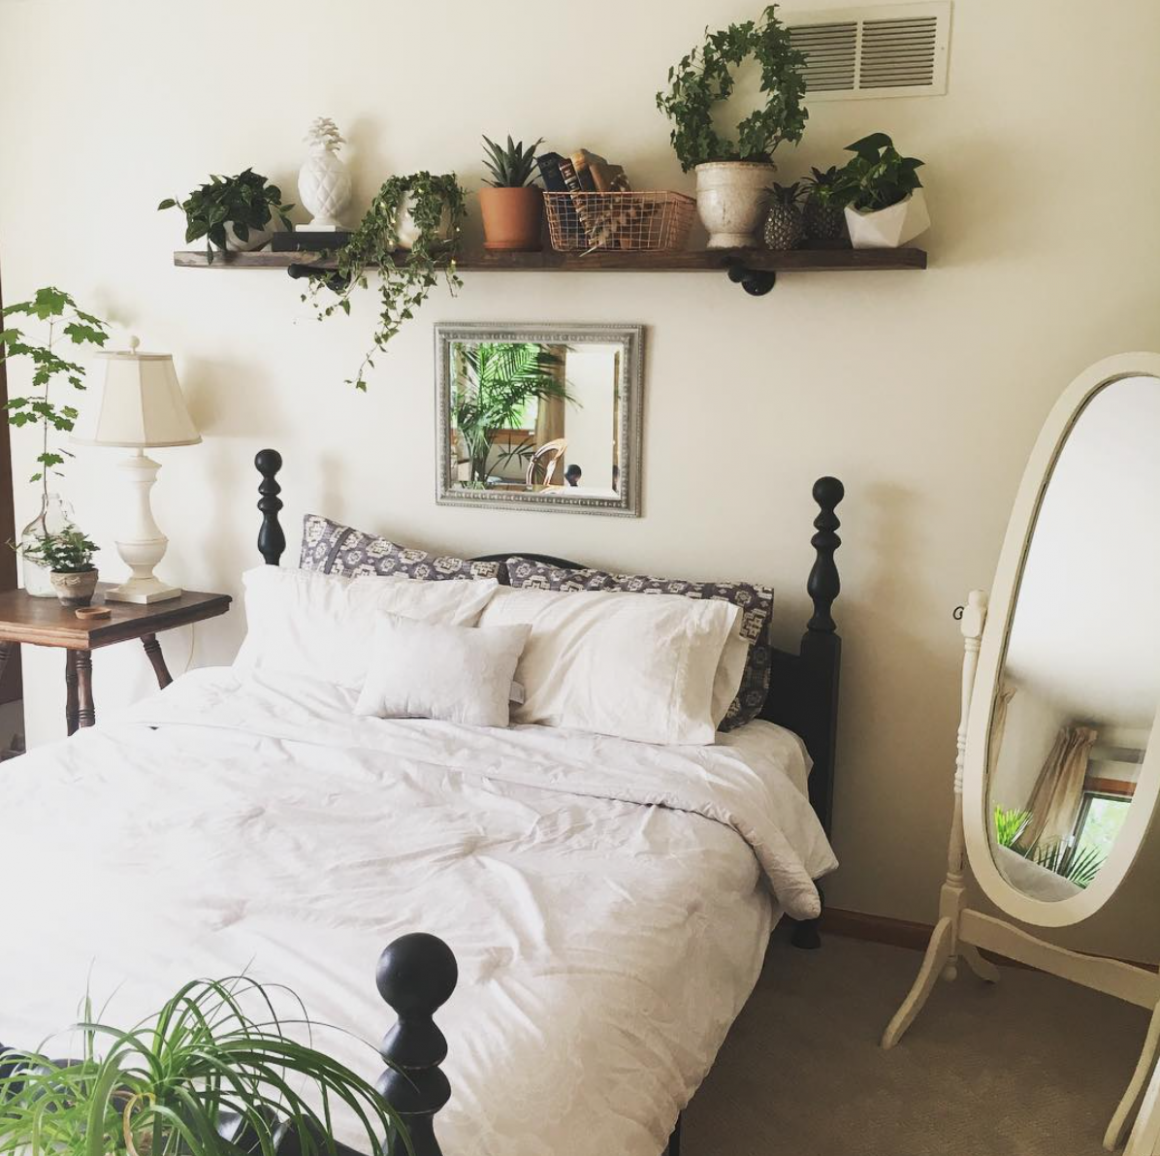 White bedroom with plants  Bedroom green, White bedroom, Bedroom  - Bedroom Ideas Plants